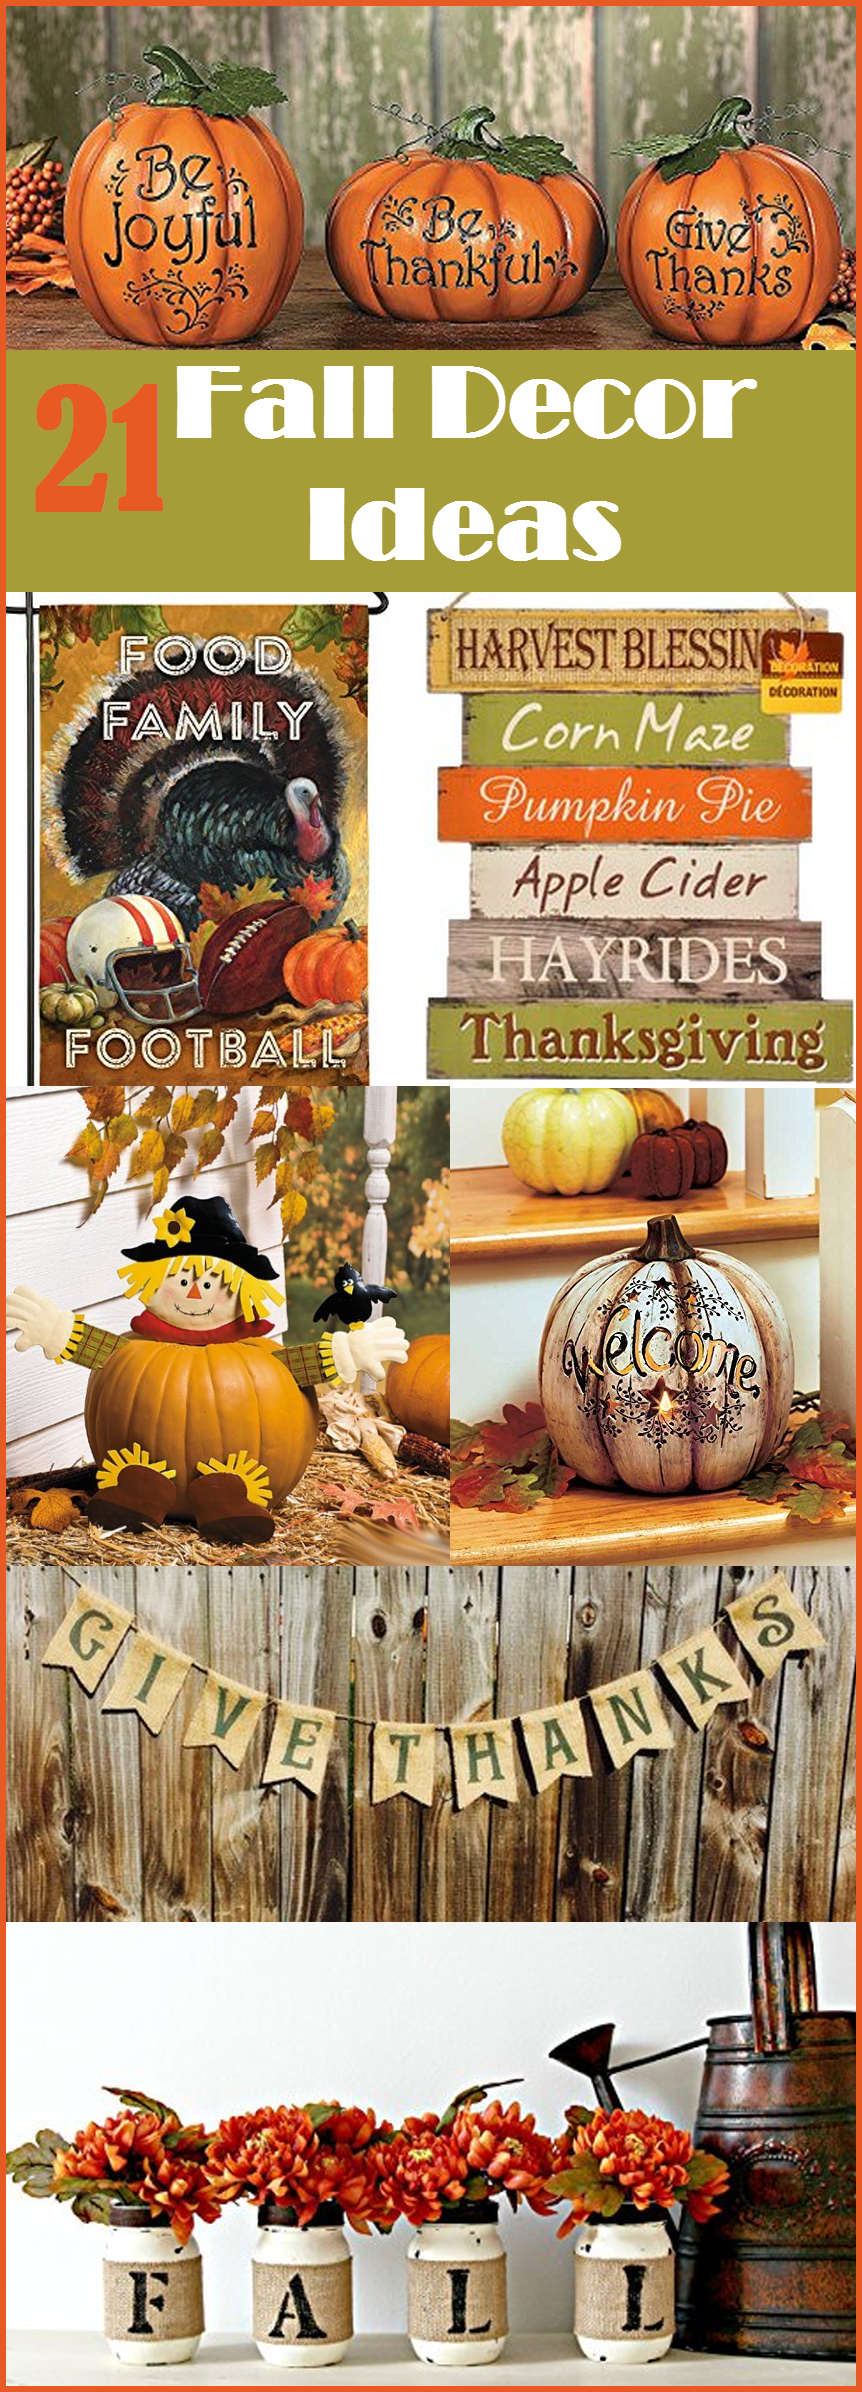 Fall Decorating Ideas – 21 Easy Ideas for Decorating Your Home for Fall